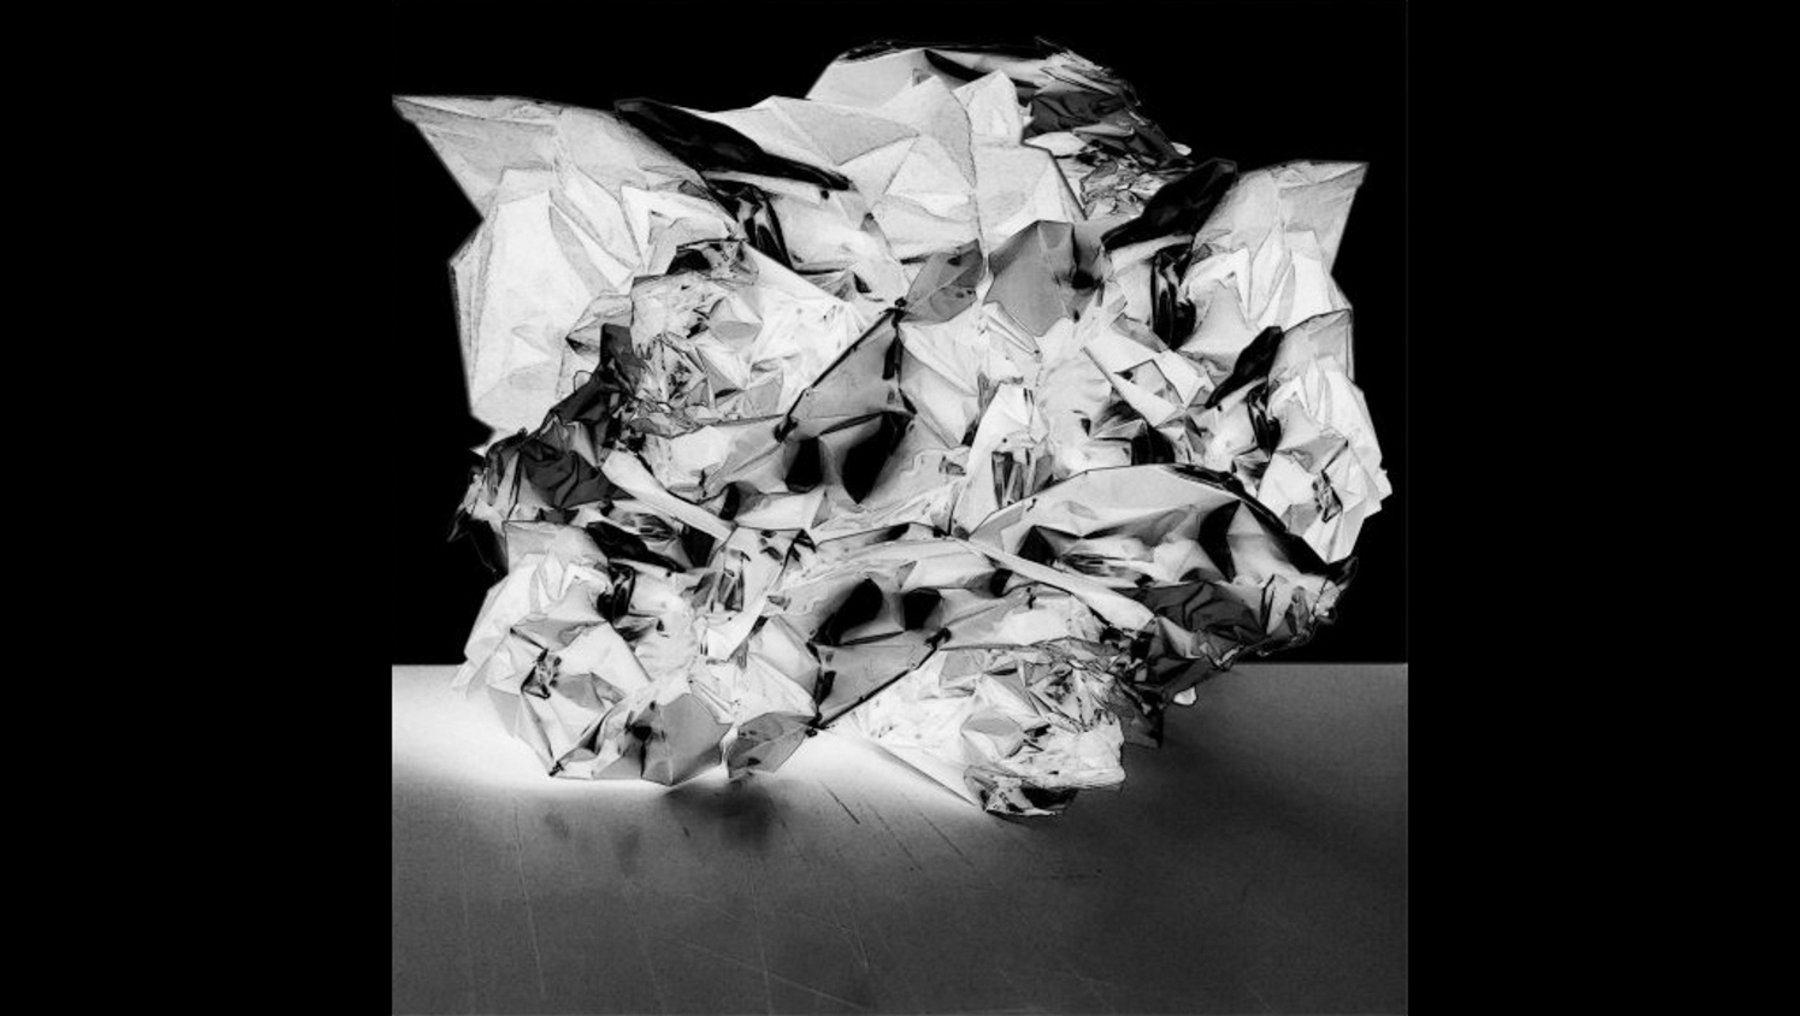 After Geometry - Overlapping Realities